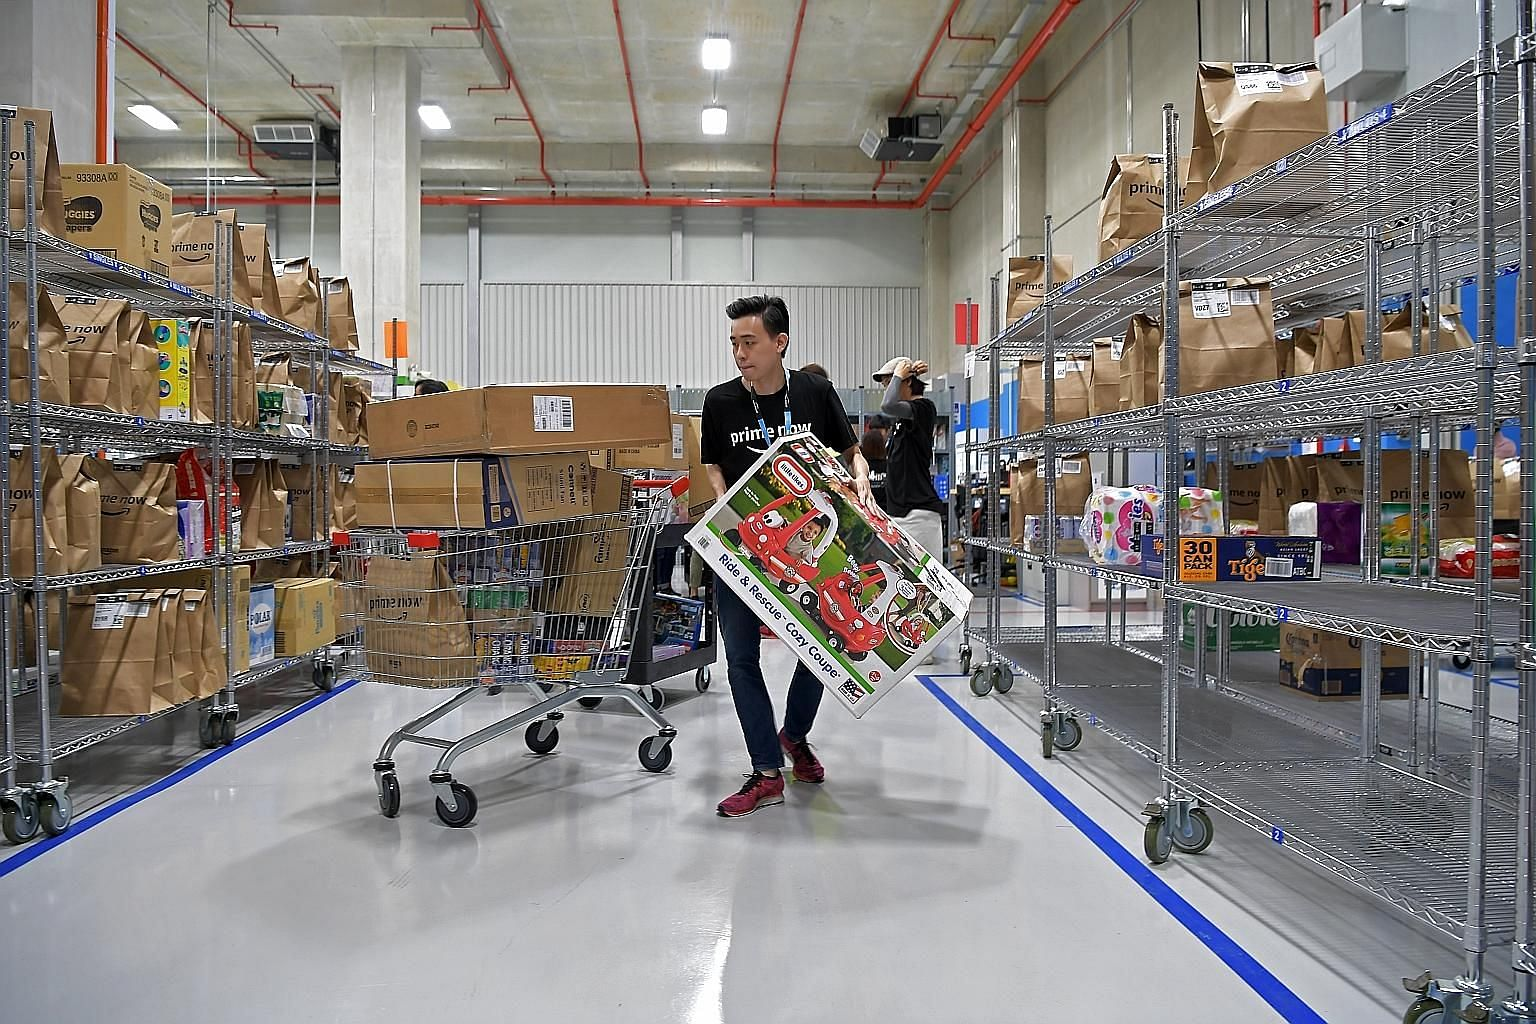 Amazon's Prime Now facility at Mapletree Logistics Hub. The e-commerce giant's anti-counterfeit programme Project Zero is now available in 17 countries, including Singapore. Each day, the programme uses machine learning technologies to scan more than